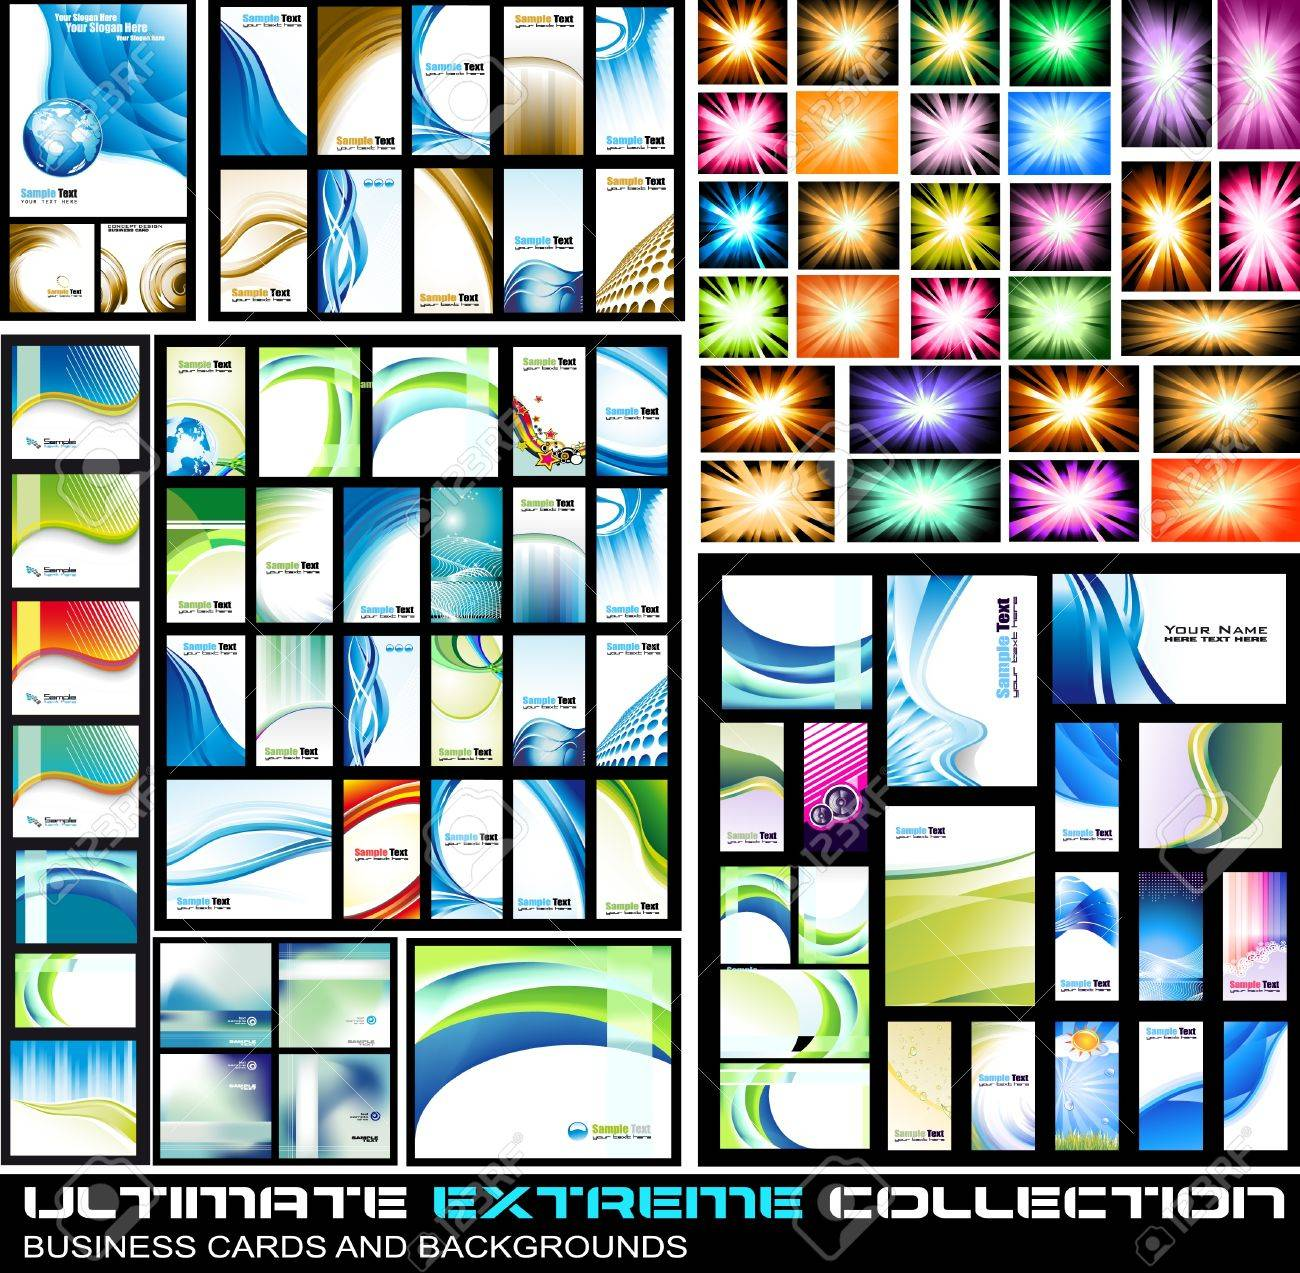 Ultimate Extreme Collection of business corporate cards and lbackground - A lot of pieces for all kind of cover,brochures and original presentations background. Stock Vector - 10298550